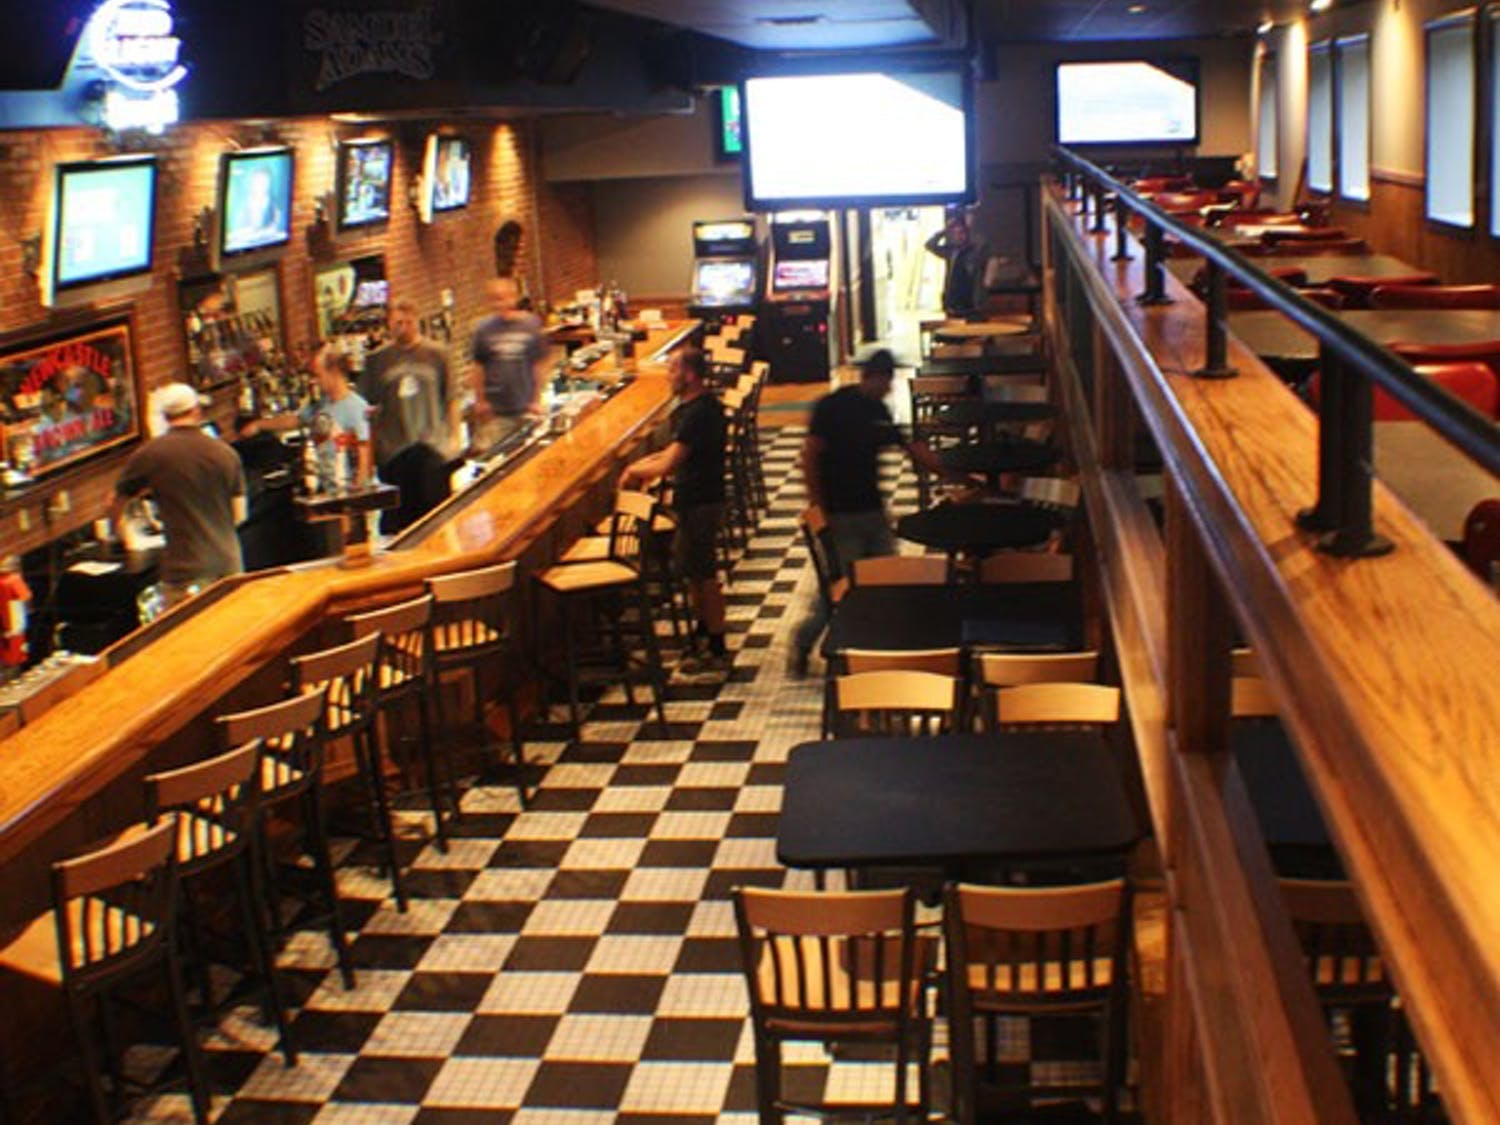 Four Corners Bar reopens this week after it closed in July due to slow business. DTH/Gladys Manzur